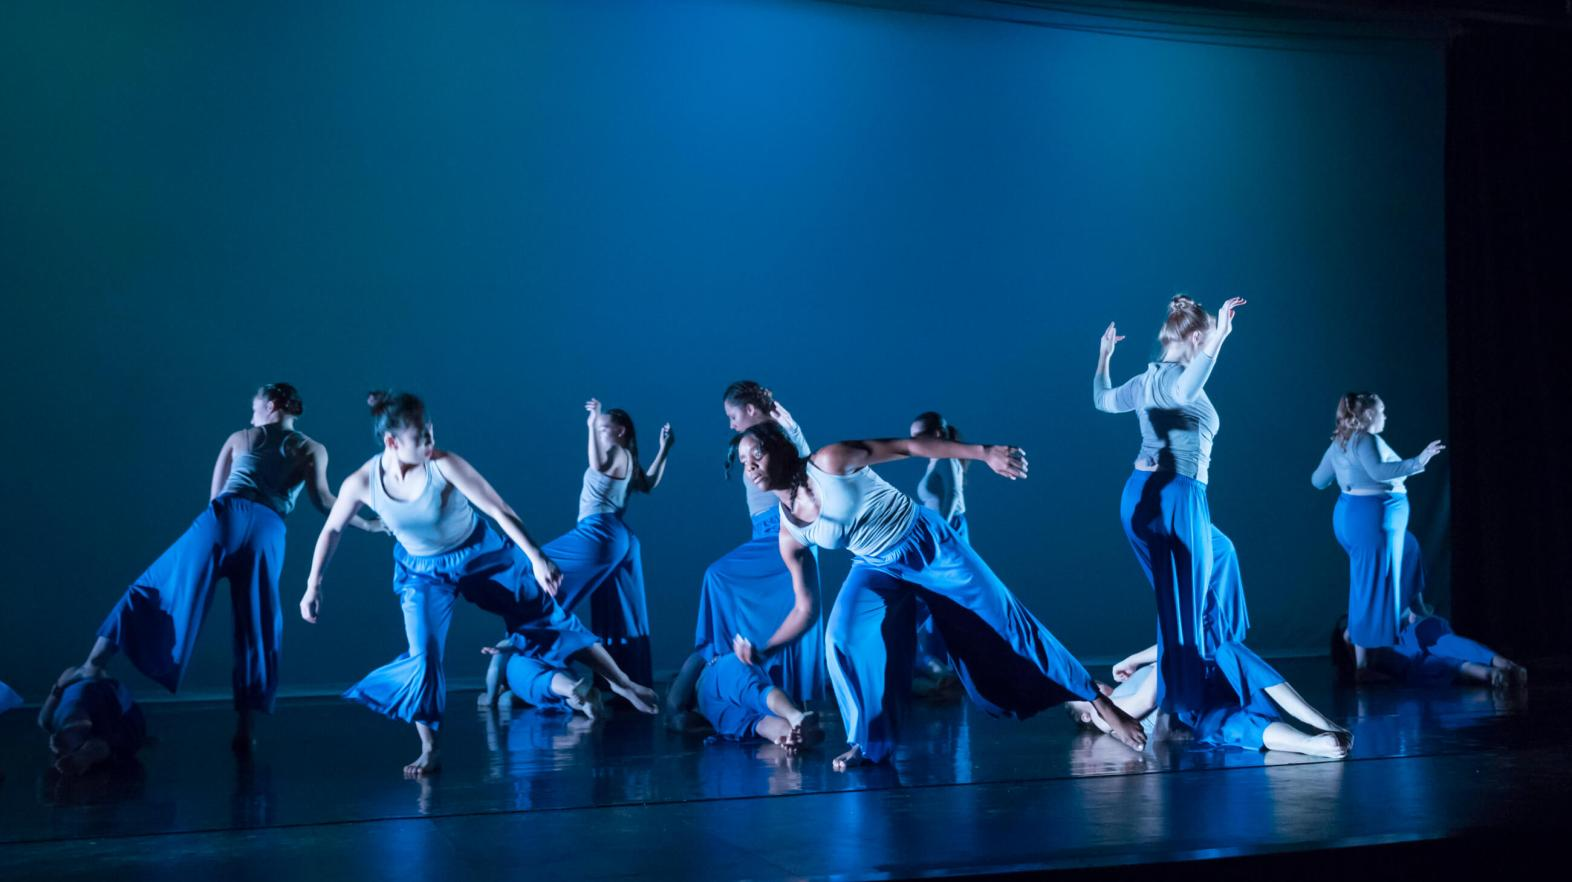 Springfield College dancers performing on stage.